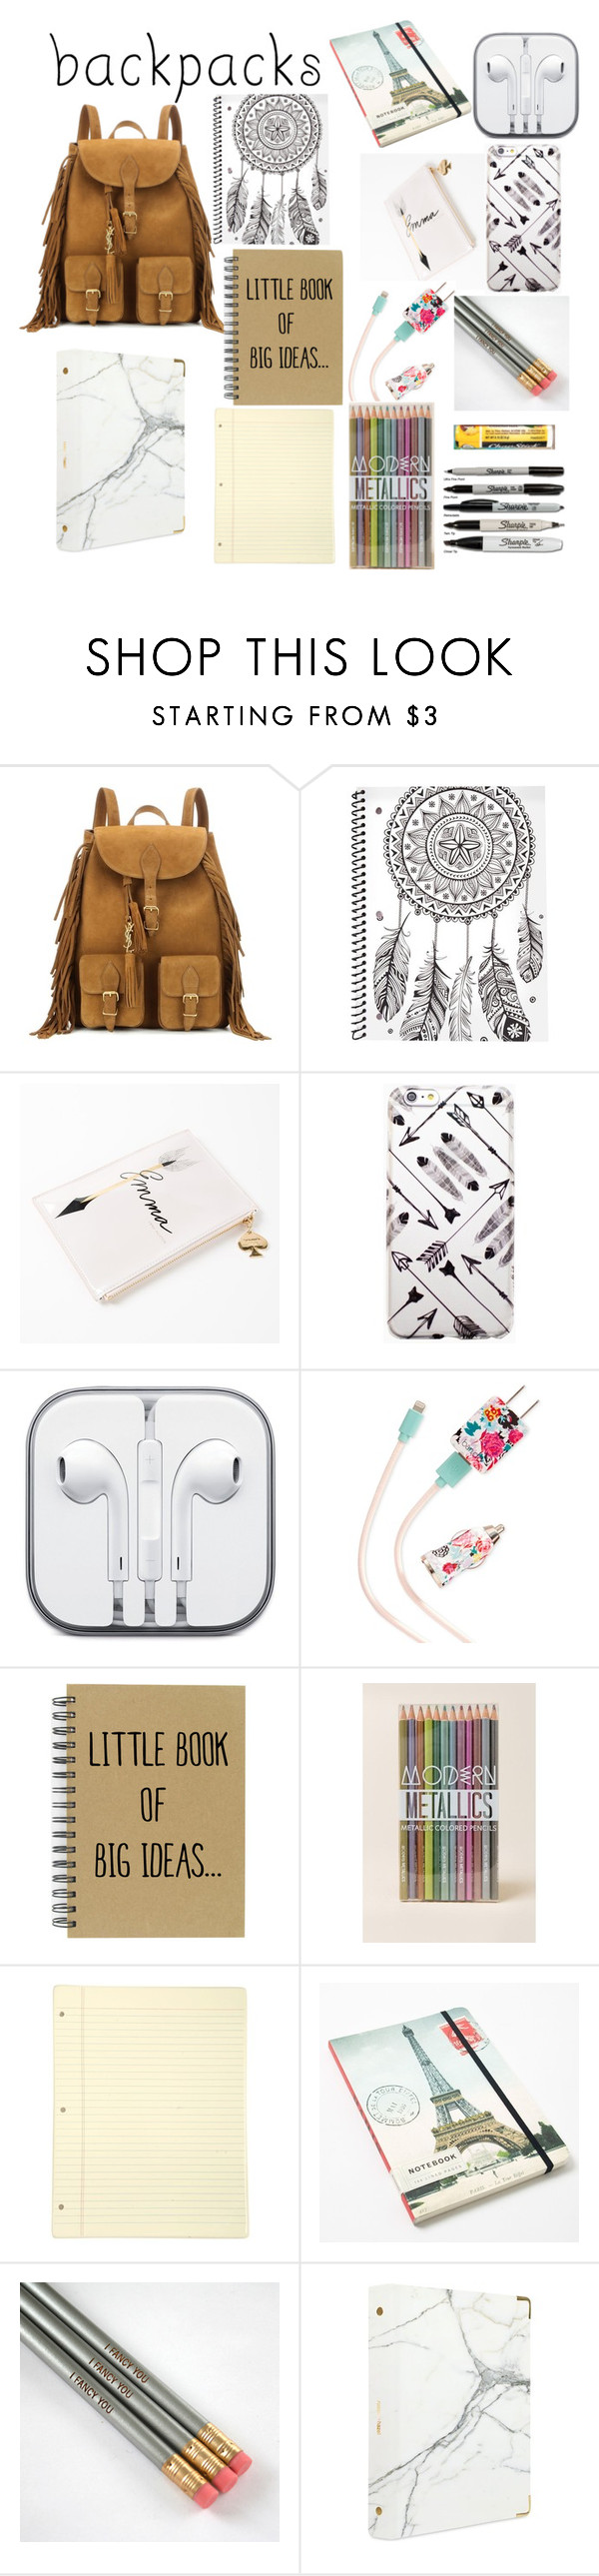 """school "" by delilah-teen-wolf ❤ liked on Polyvore featuring Yves Saint Laurent, Kate Spade, ban.do, Cavallini, russell+hazel, Chapstick, backpacks, contestentry and PVStyleInsiderContest"